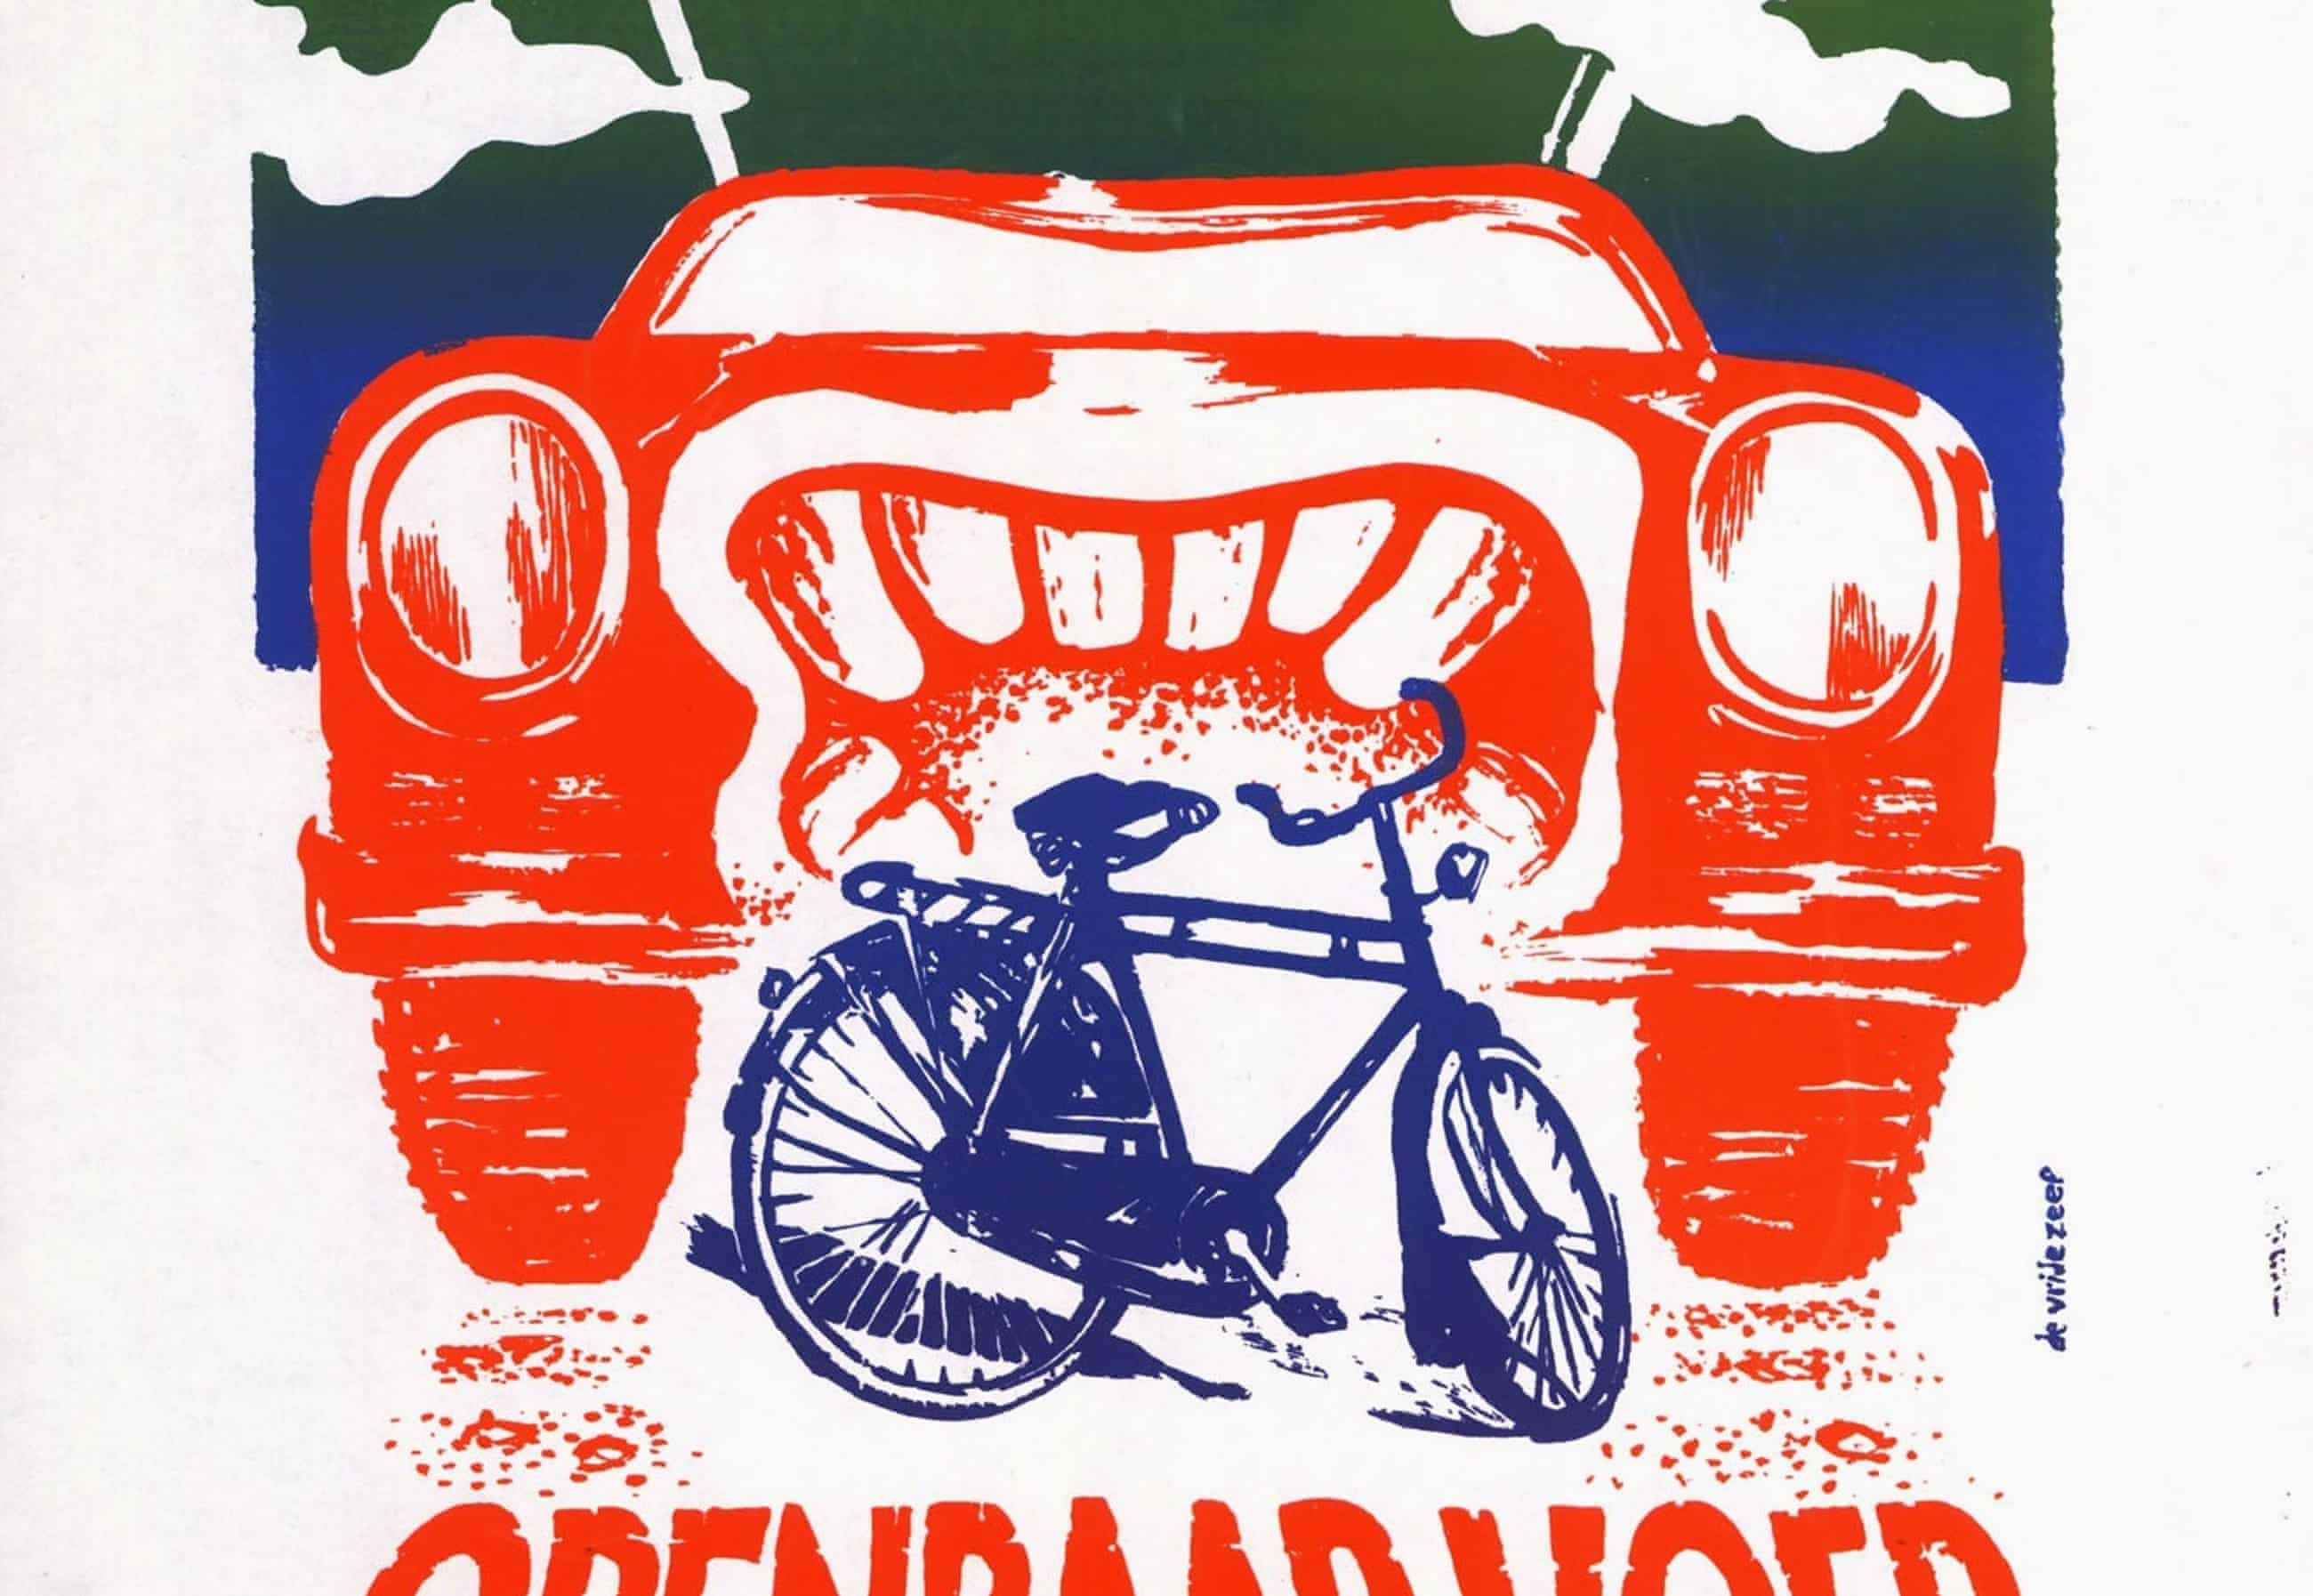 'I think therefore I cycle': 50 years of Dutch anti-car posters – in pictures